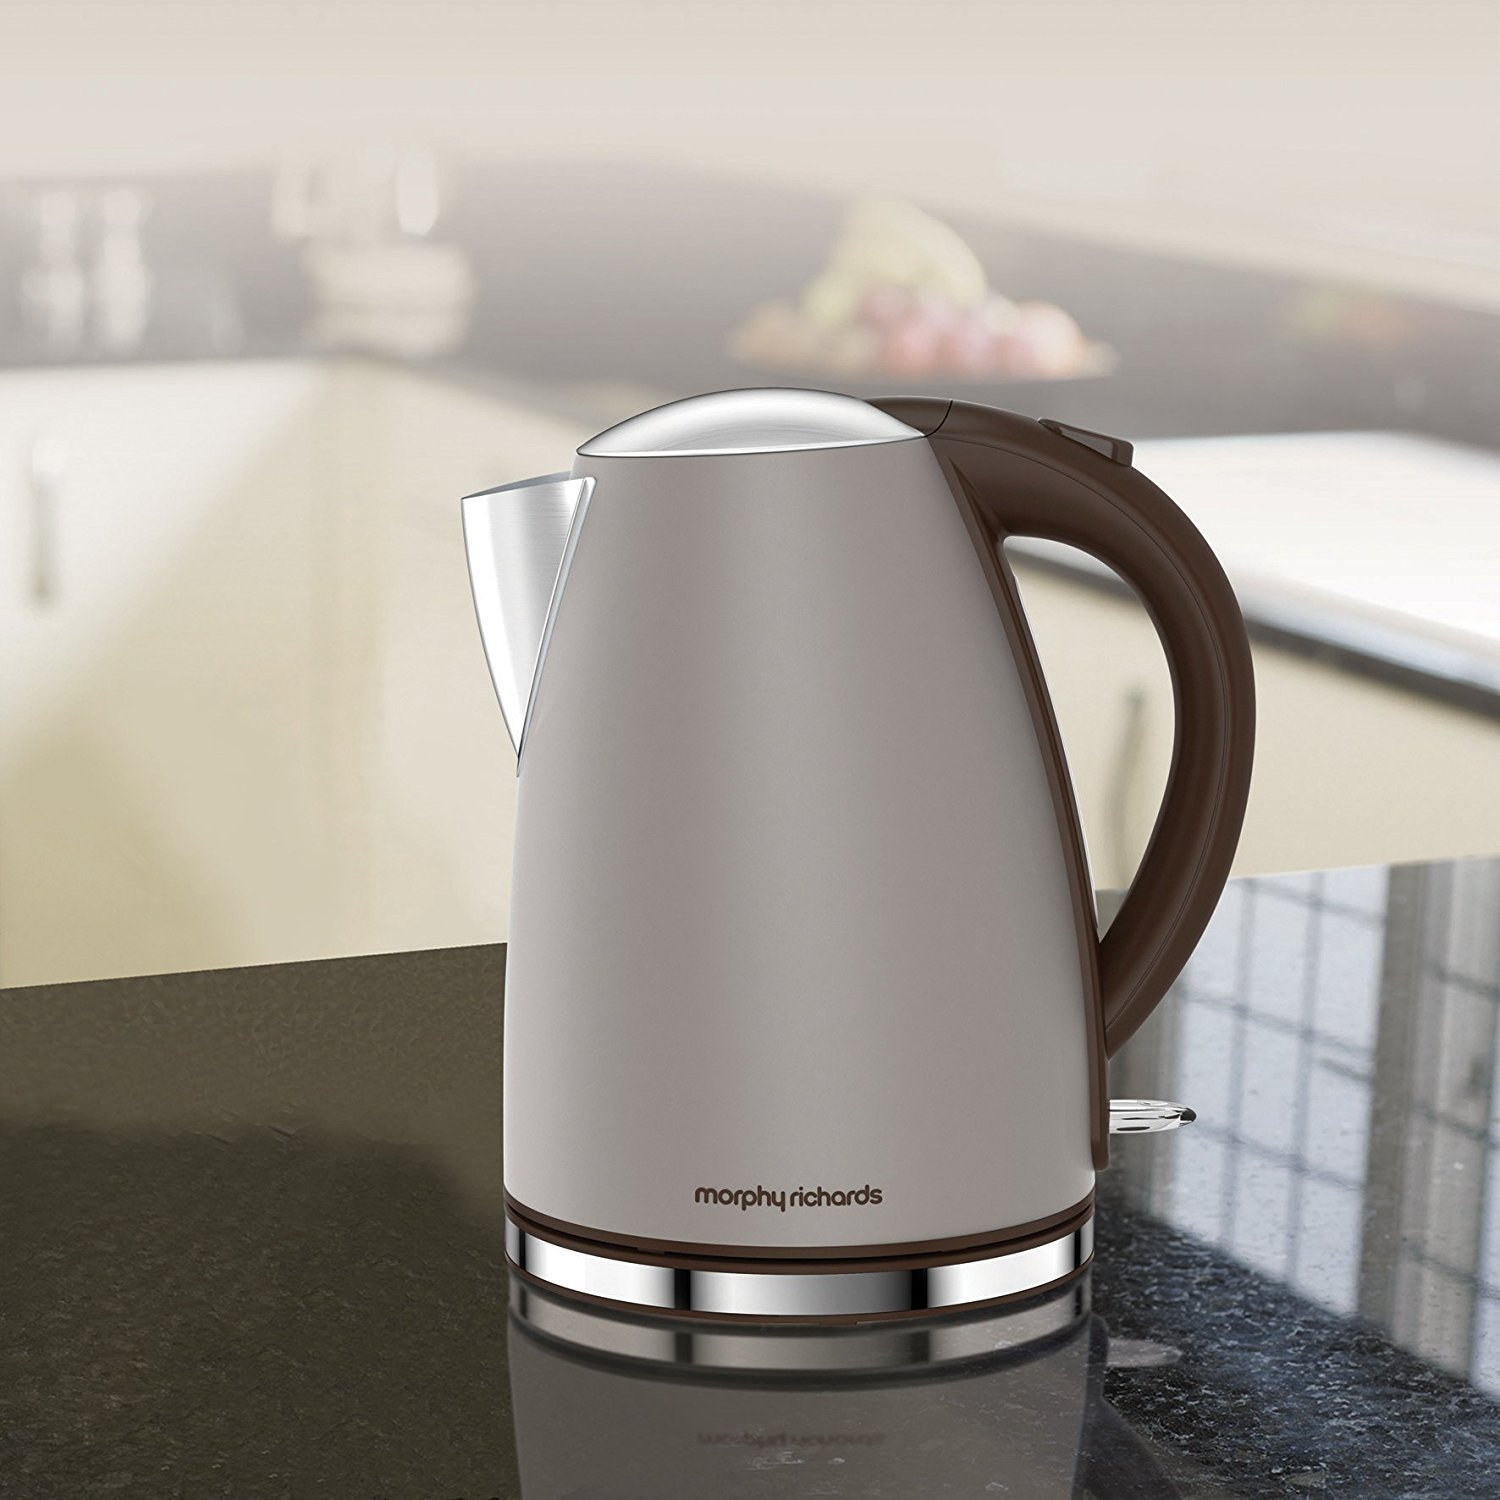 5l accents range only electricals co uk small kitchen appliances - Morphy Richards Accents Pebble Electric Hot Boiling Water Kettle Jug 2 Slice Toaster Kitchen Set Amazon Co Uk Kitchen Home